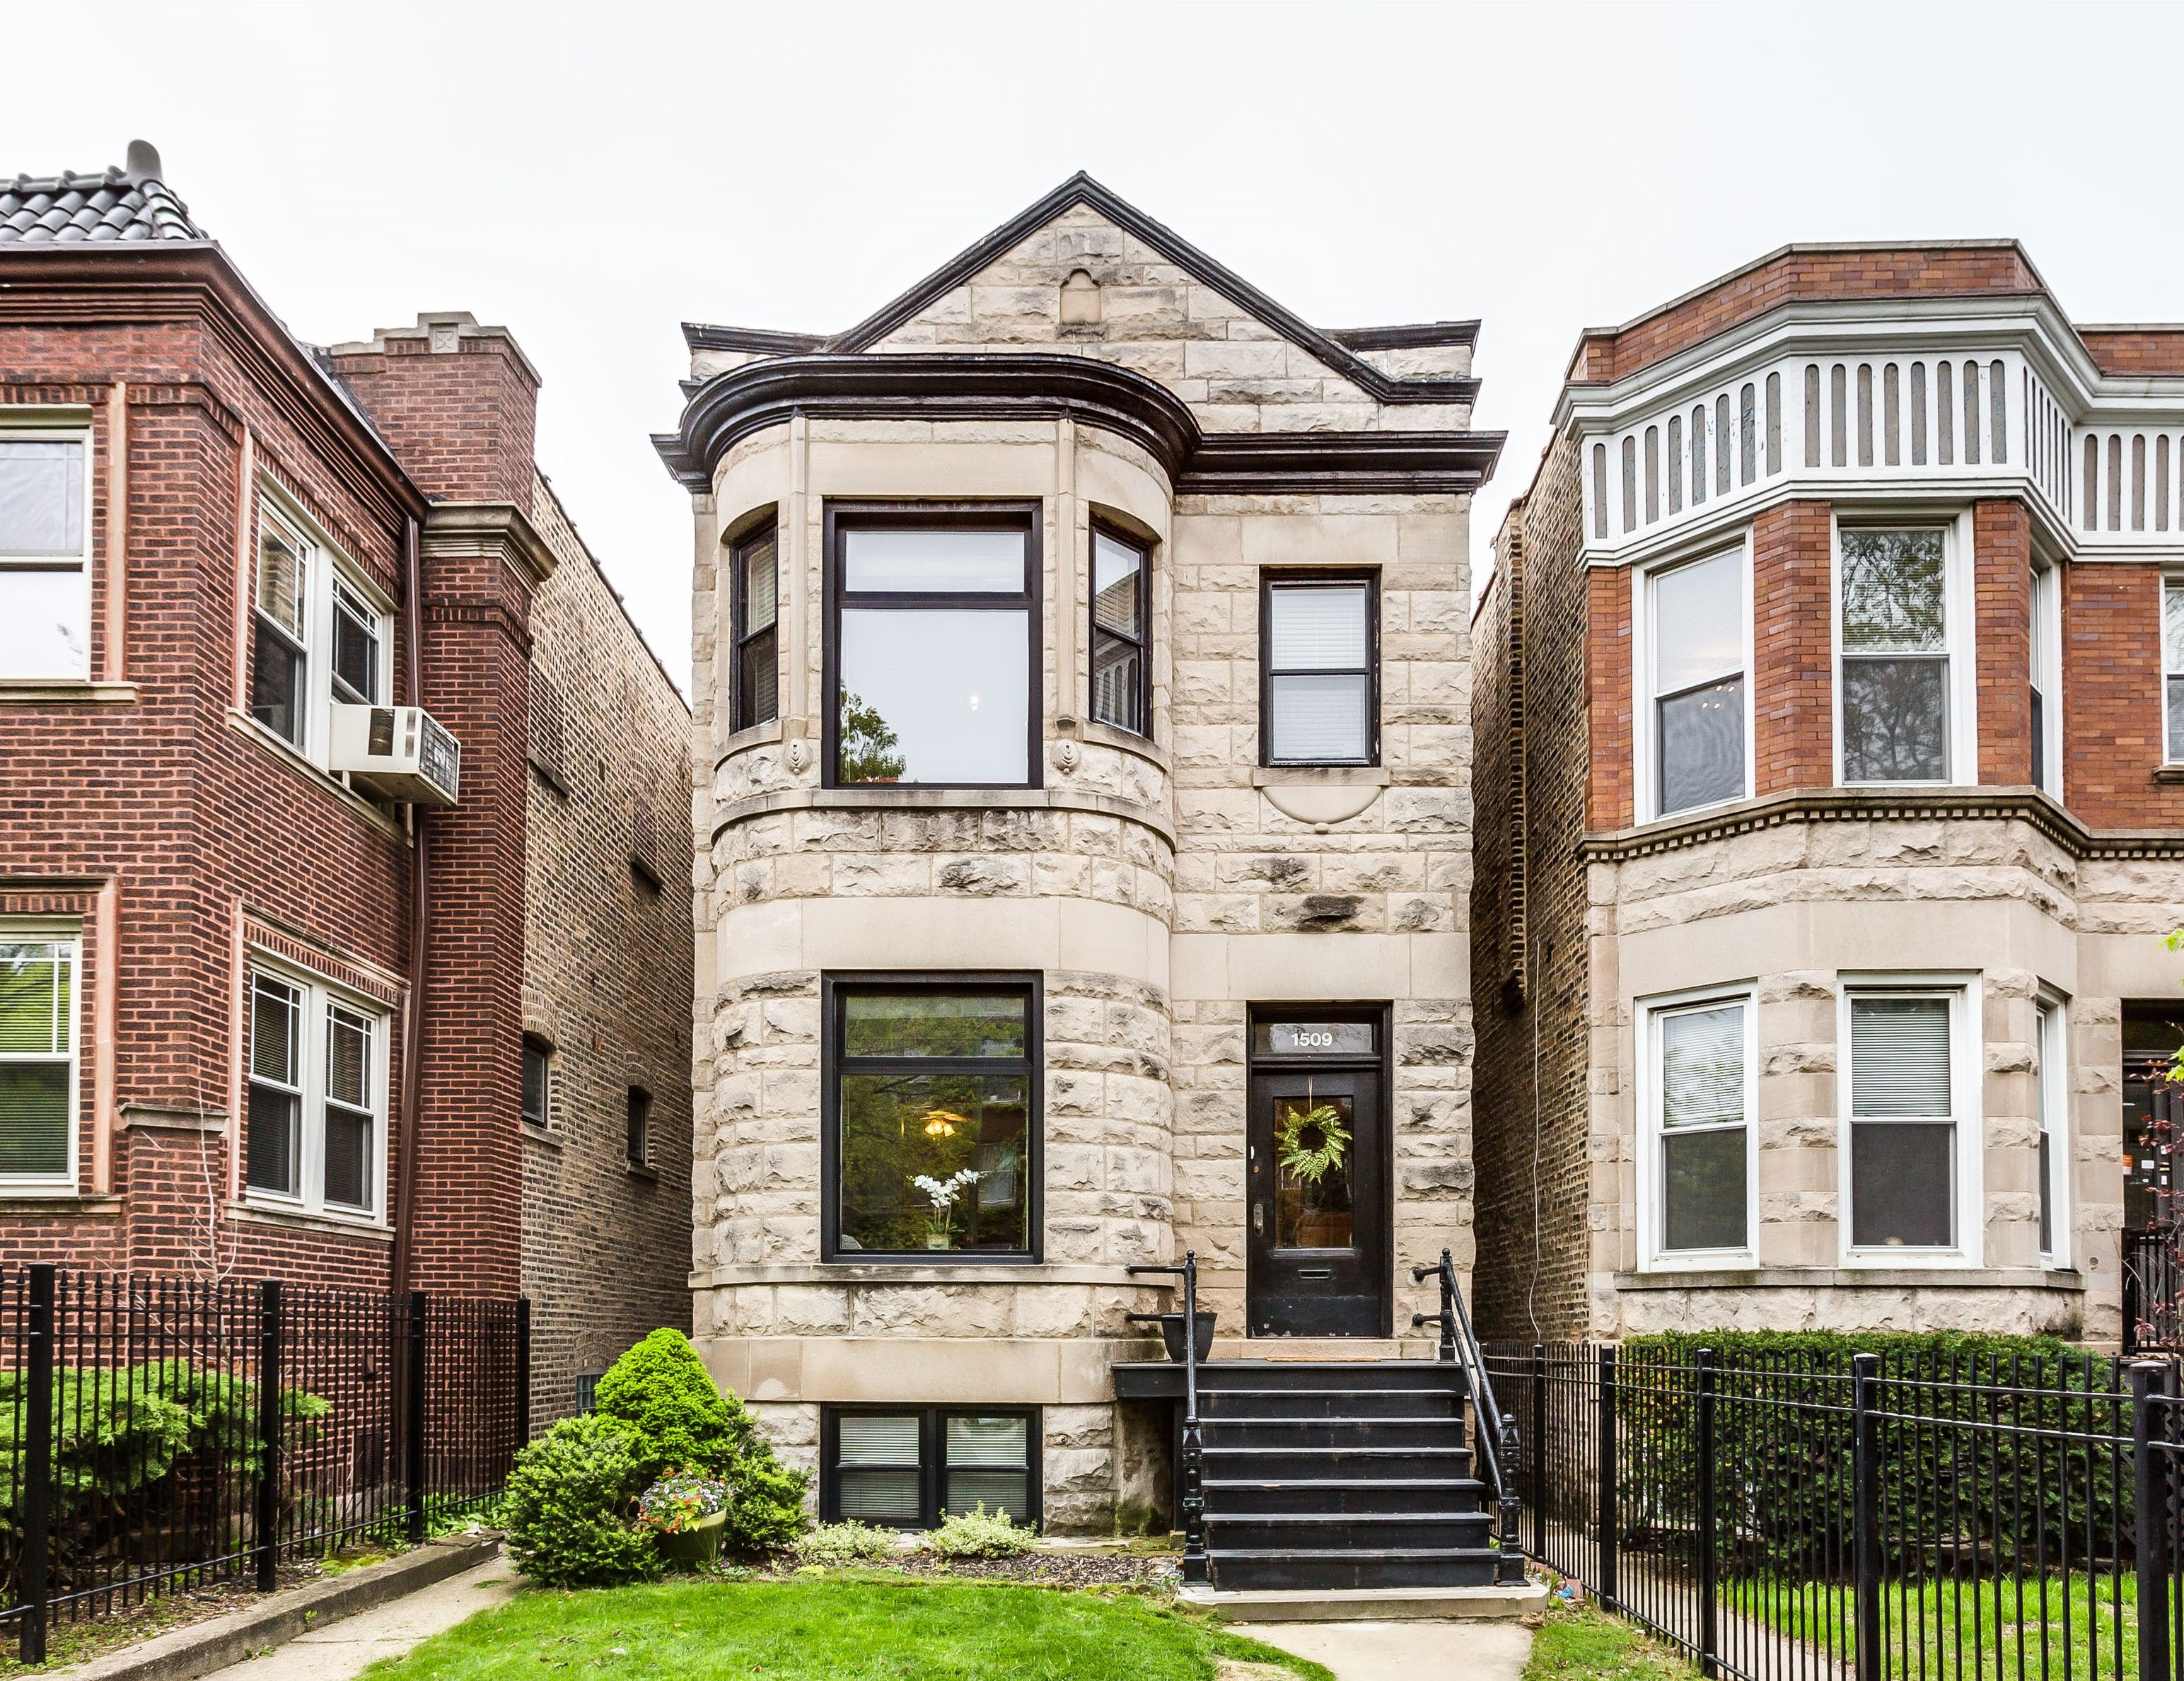 Classic 2 Flat Greystone Apartment Building In The Lakeview Neighborhood Of Chicago With Black Door Brick Exterior House Townhouse Designs Village House Design